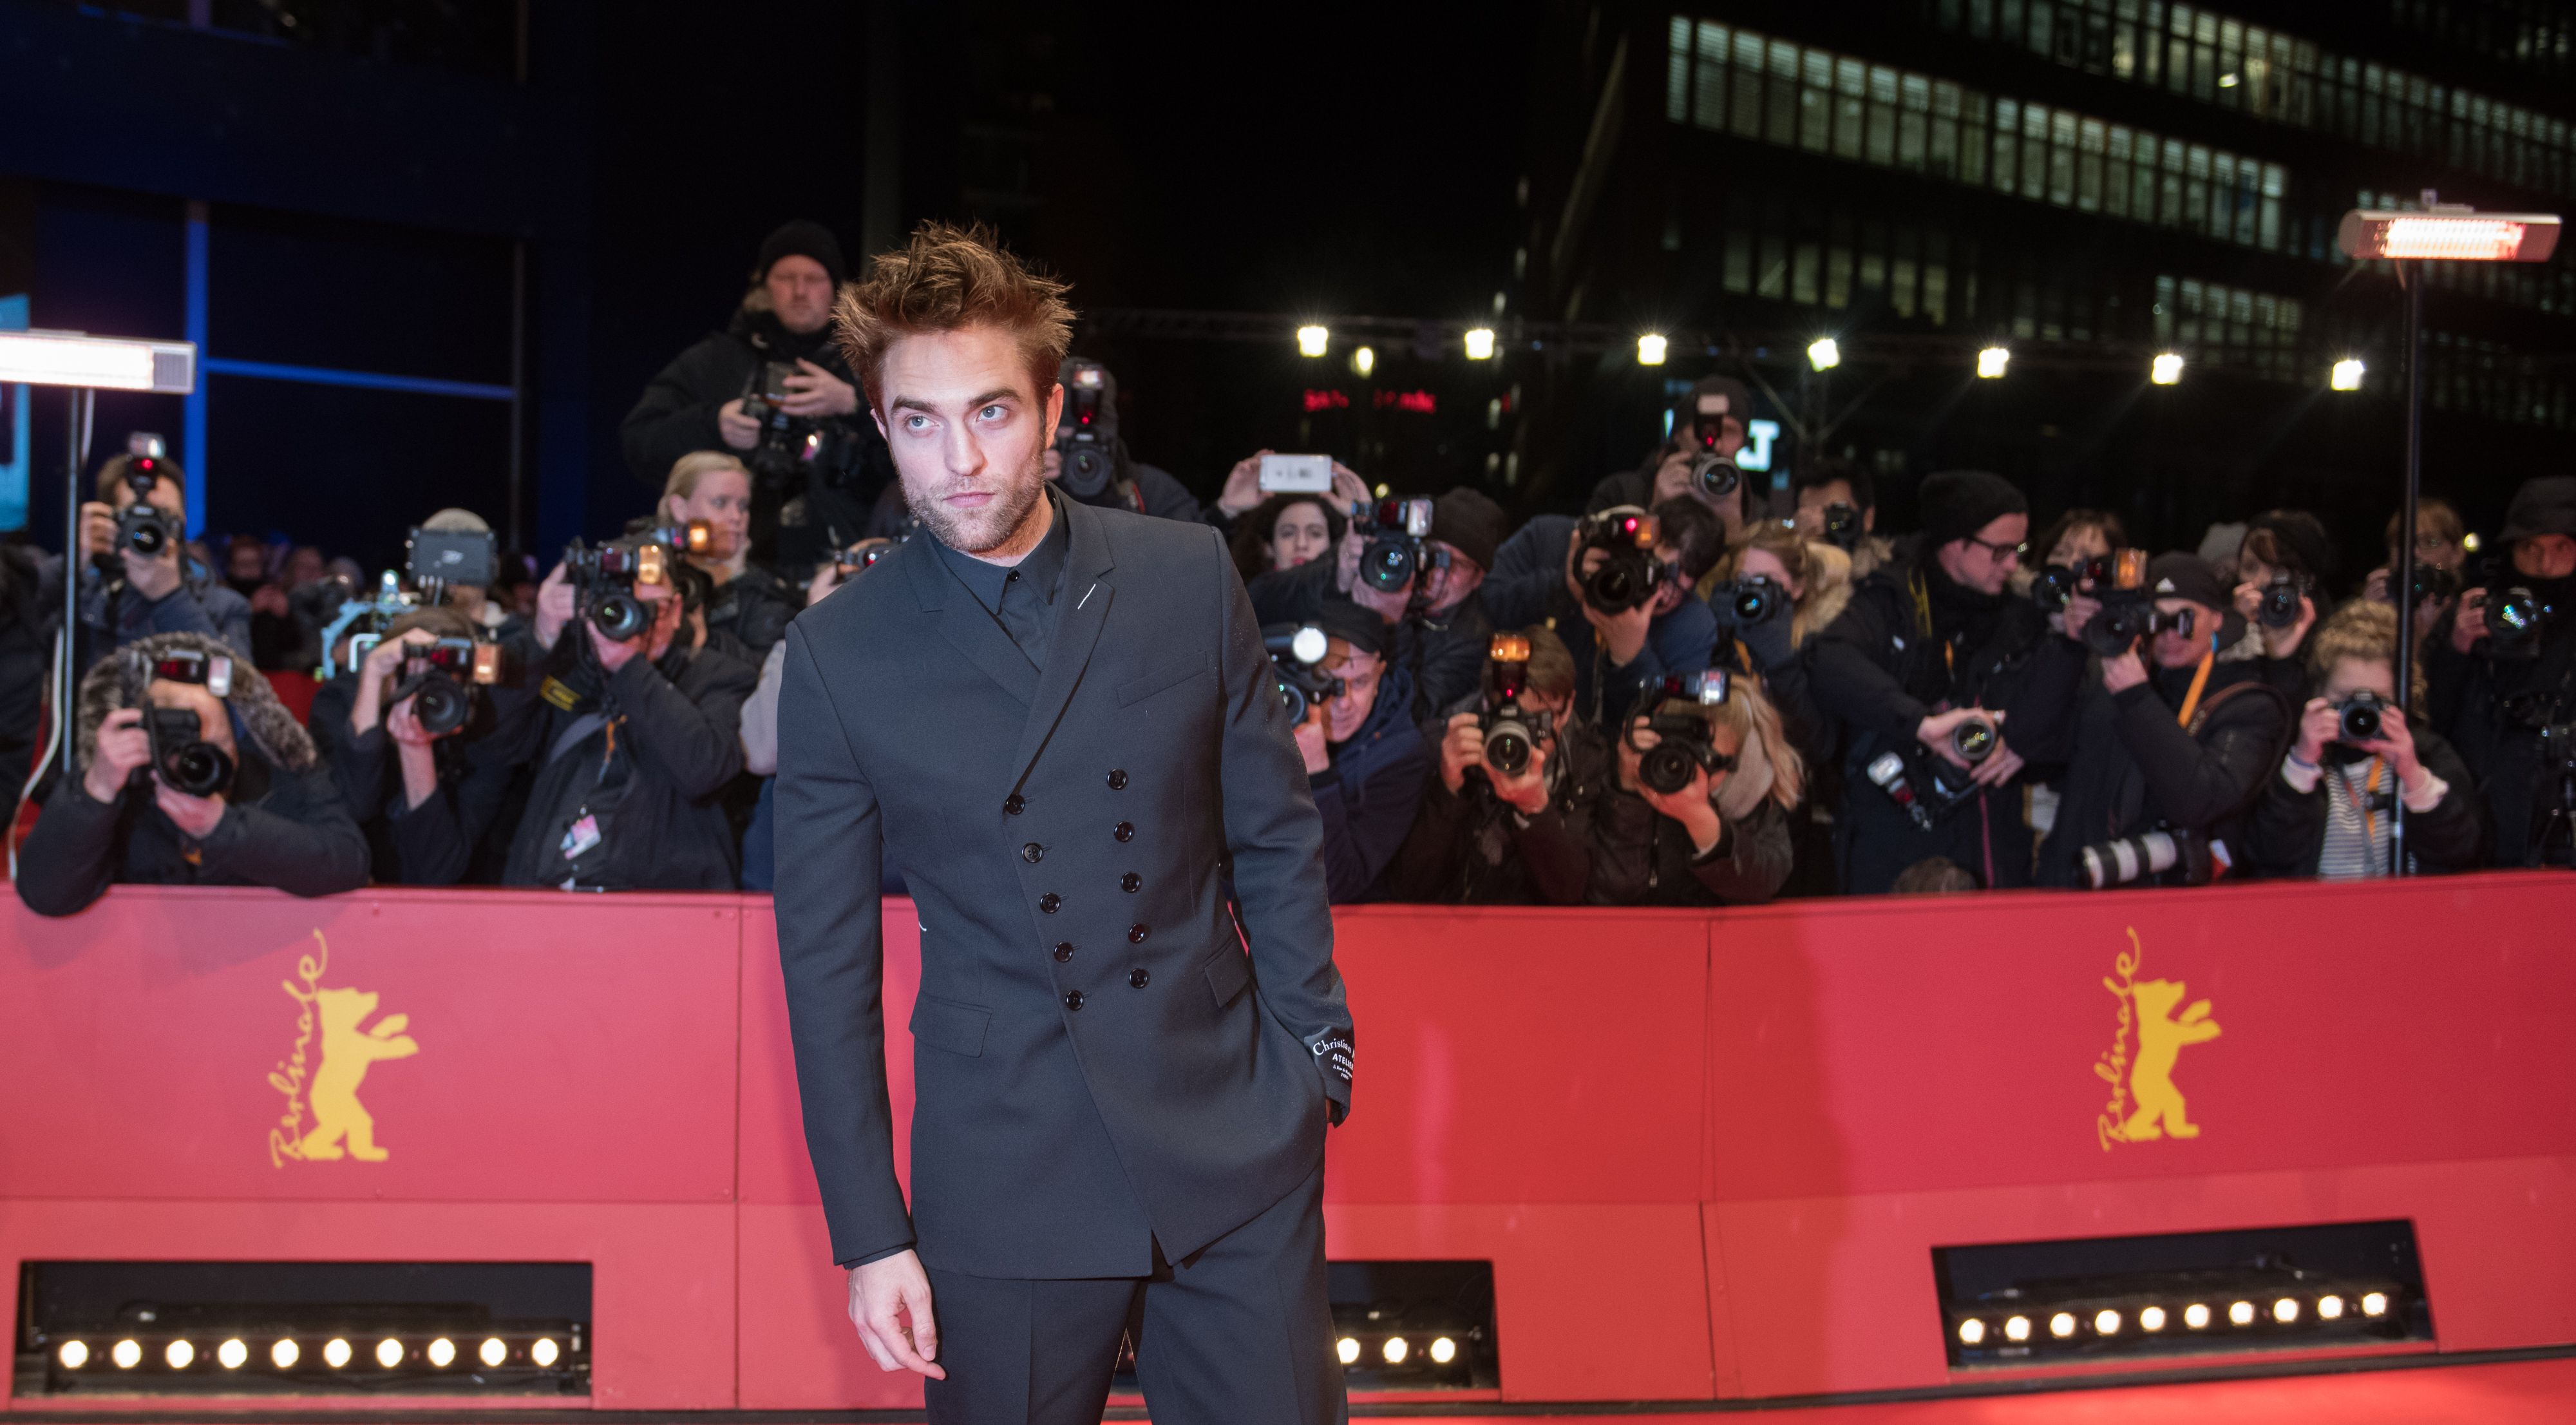 GERMANY-BERLINALE-FILM-FESTIVAL